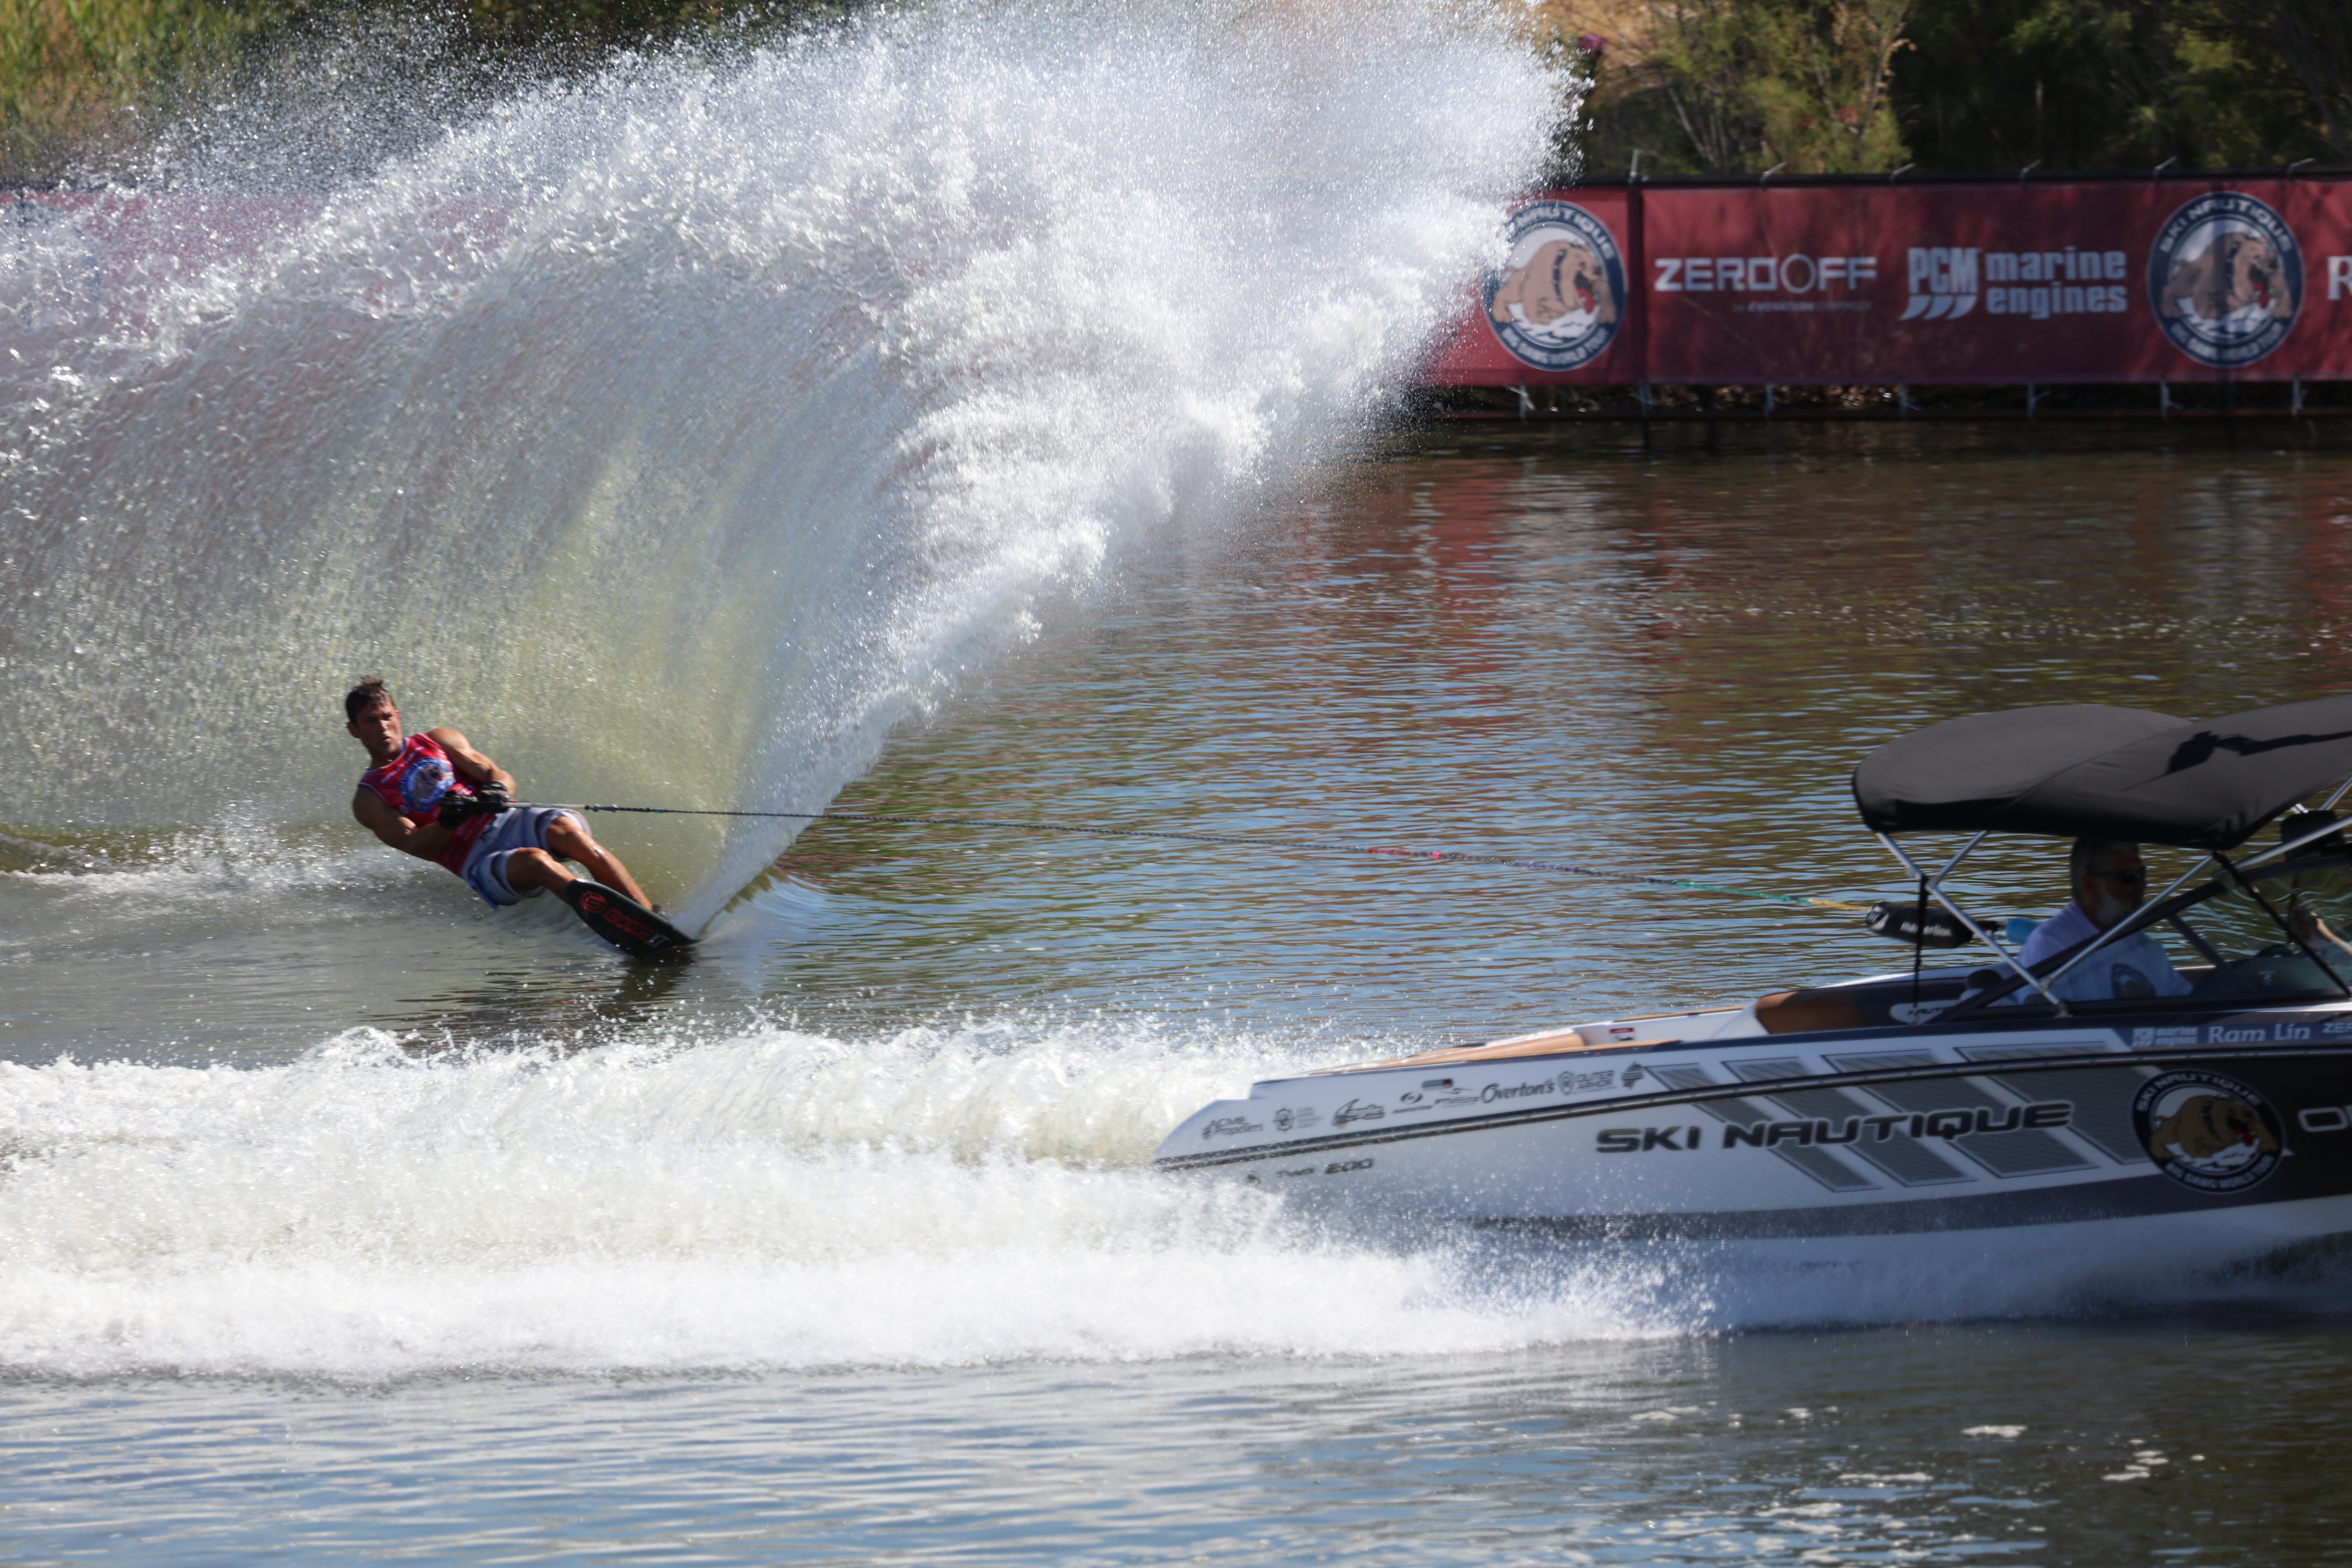 Nautique Big Dawg World TourAlbum 1 « Gallery 41 « Page 2